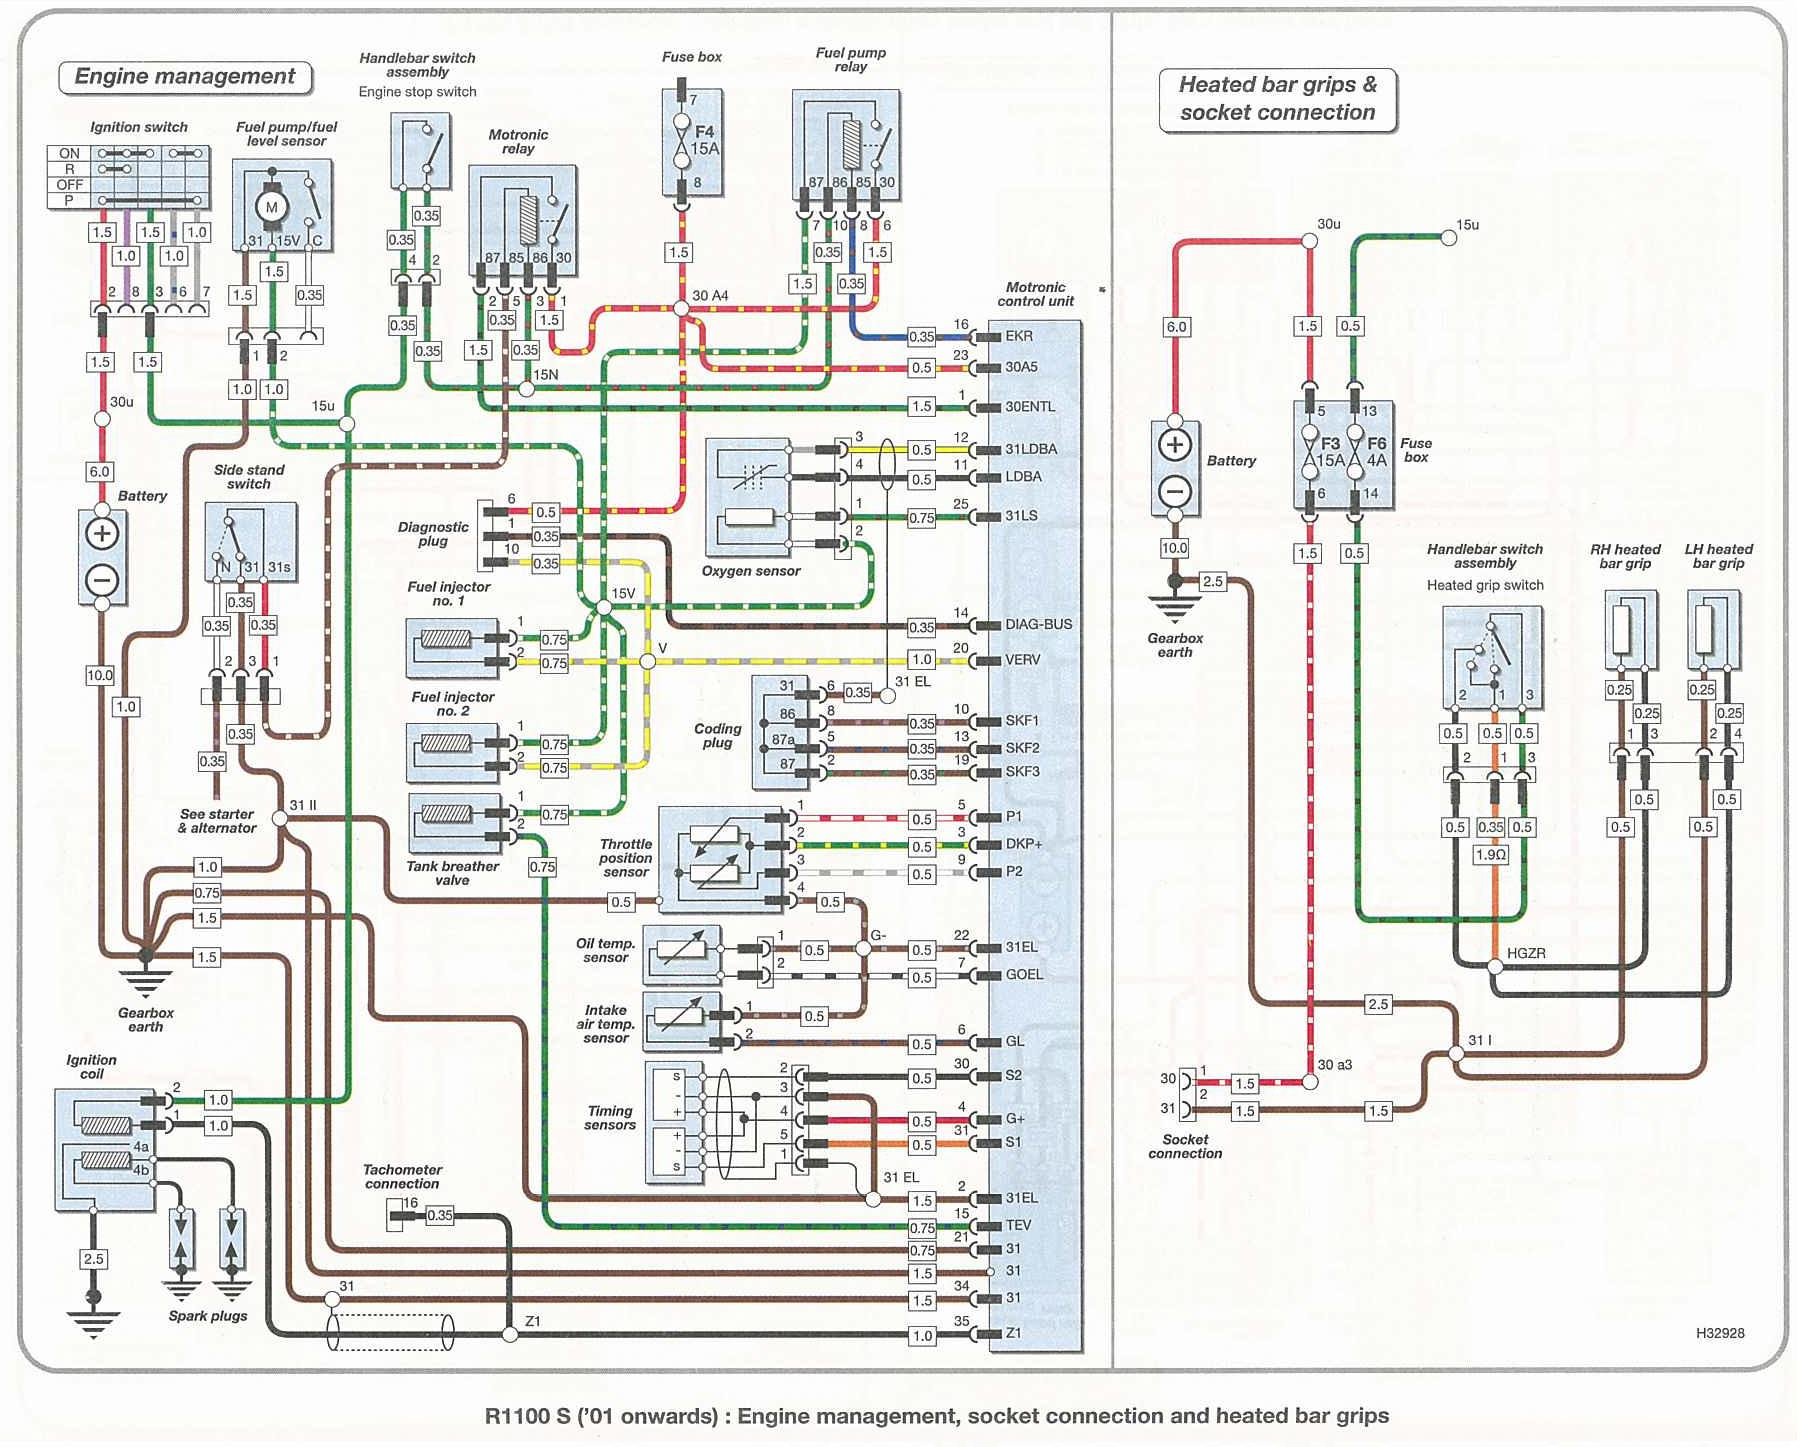 wiring07 bmw r1100s wiring diagrams kk2 1 5 wiring diagram at honlapkeszites.co